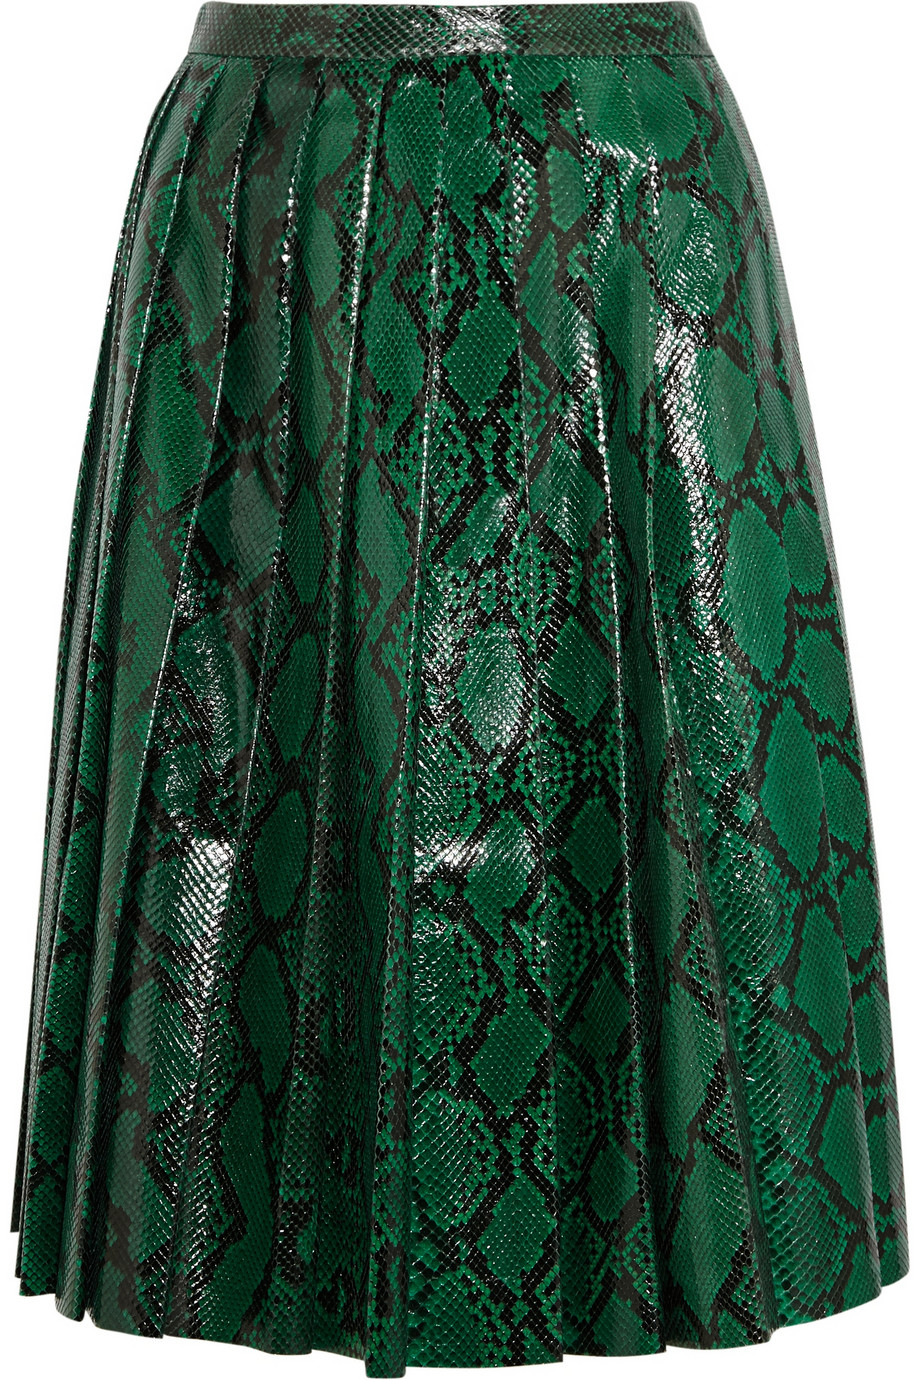 Couture Carrie Haute Emerald